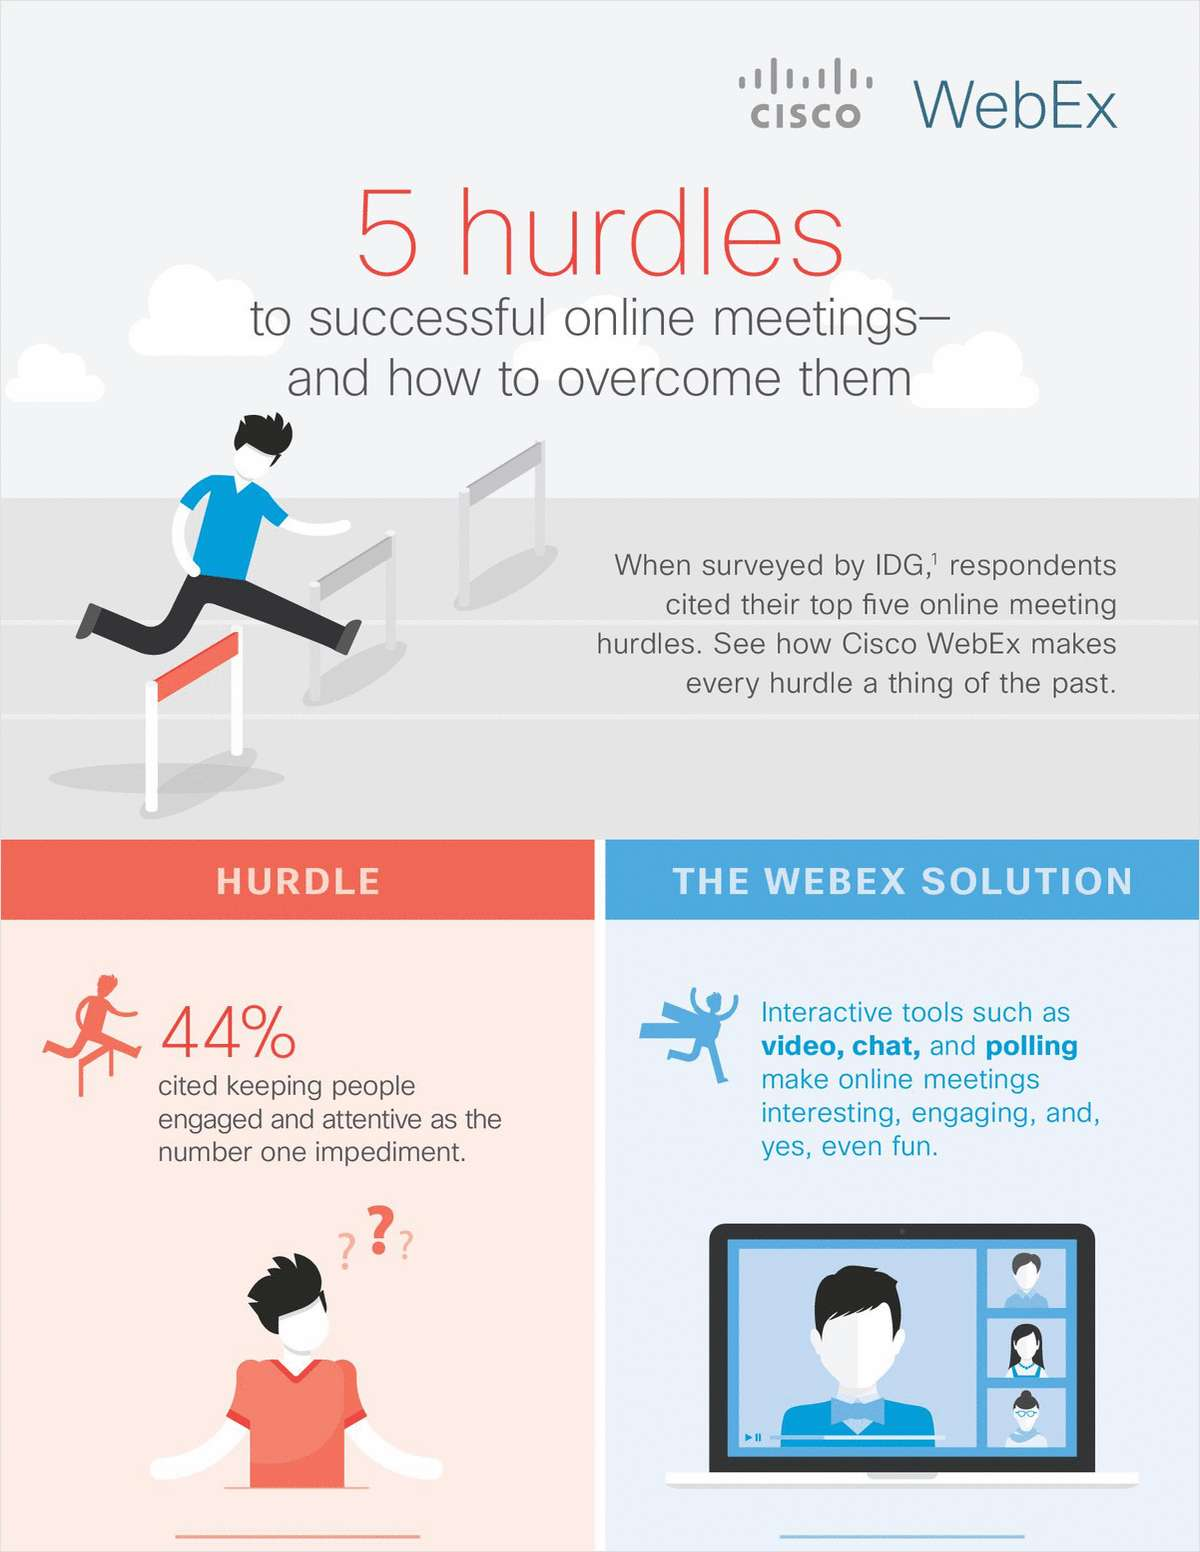 How to Overcome Hurdles to a Successful Online Meeting, Free